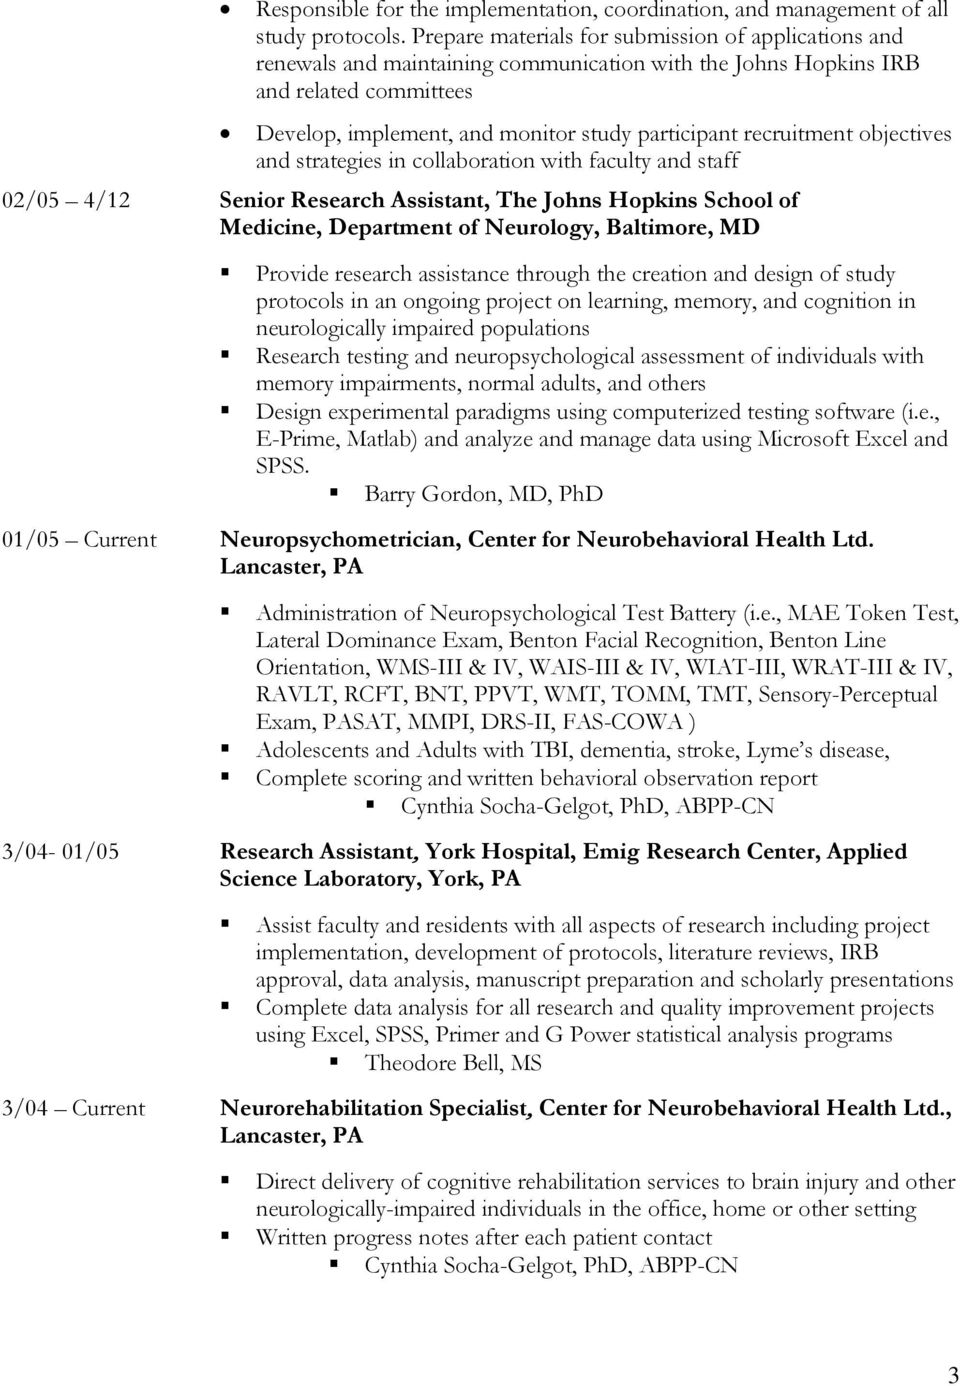 recruitment objectives and strategies in collaboration with faculty and staff 02/05 4/12 Senior Research Assistant, The Johns Hopkins School of Medicine, Department of Neurology, Baltimore, MD